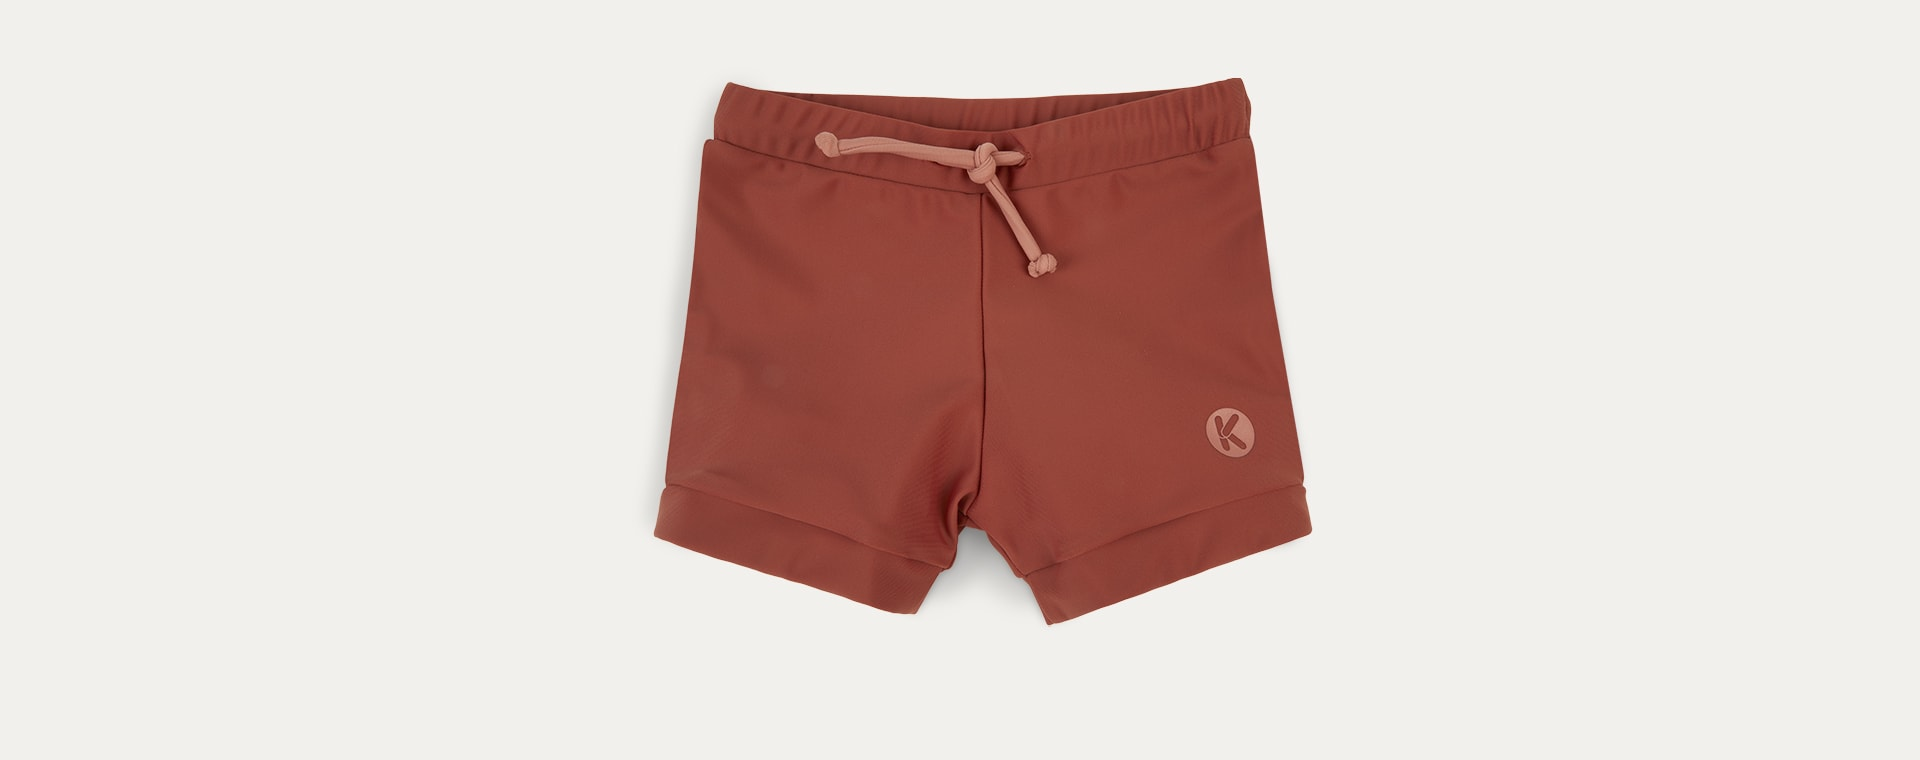 Terracotta KIDLY Label Recycled Swim Trunks